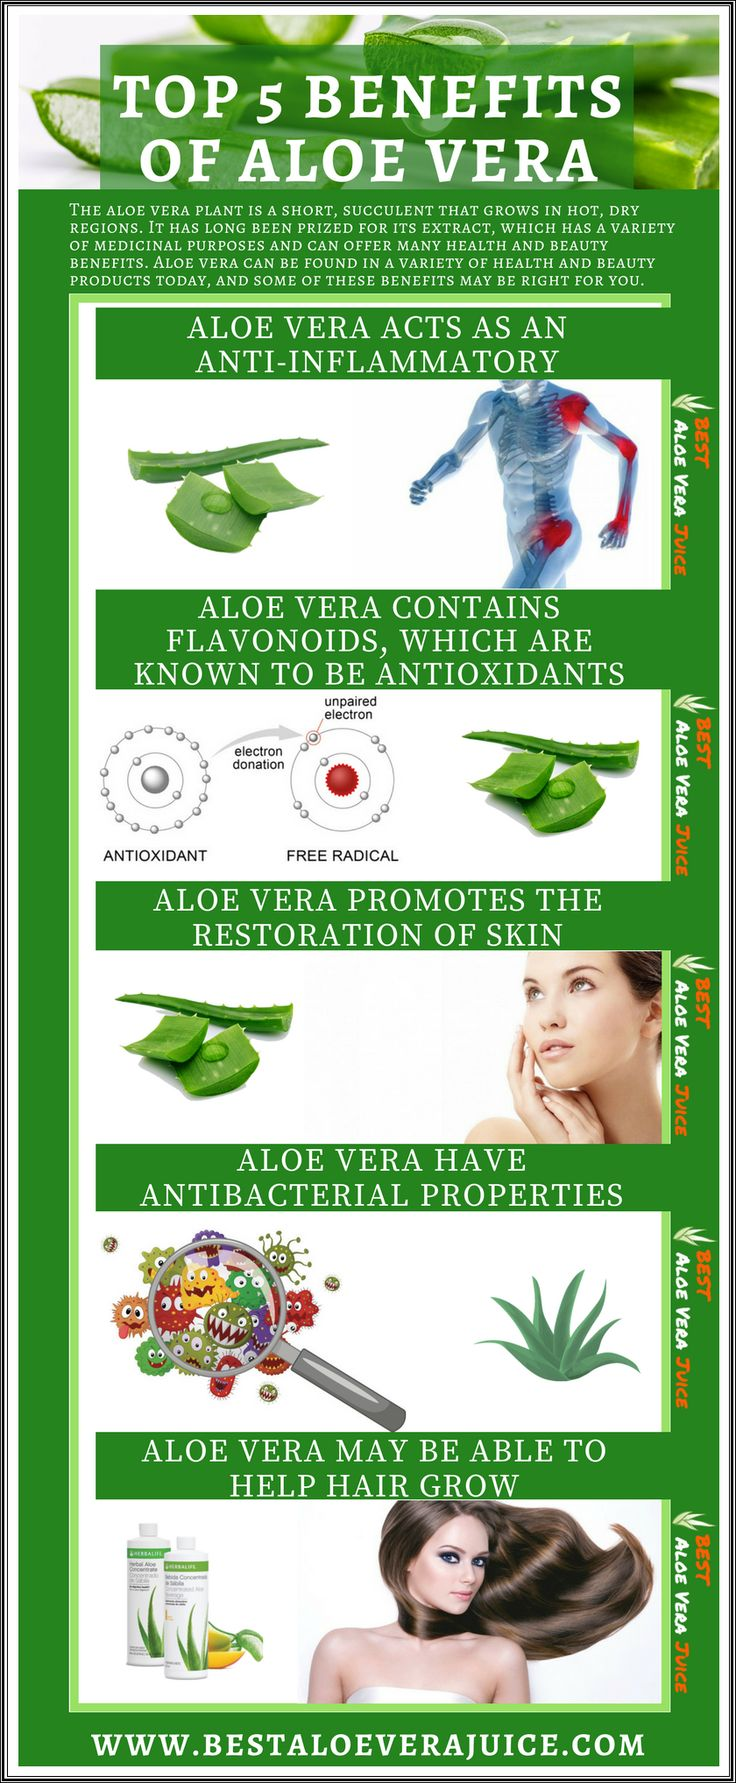 It is often used as a topical #treatment to soothe and heal damaged #skin, most often on burns, blisters, razor burn, insect bites, rashes, and sunburns. It also helps to soothe acne. You can use #aloe_vera directly from the plant on your inflamed skin, or you can look for aloe vera #skin_care products in #gel and #cream forms. Store the products in the refrigerator, so they are extra soothing on your irritated skin.